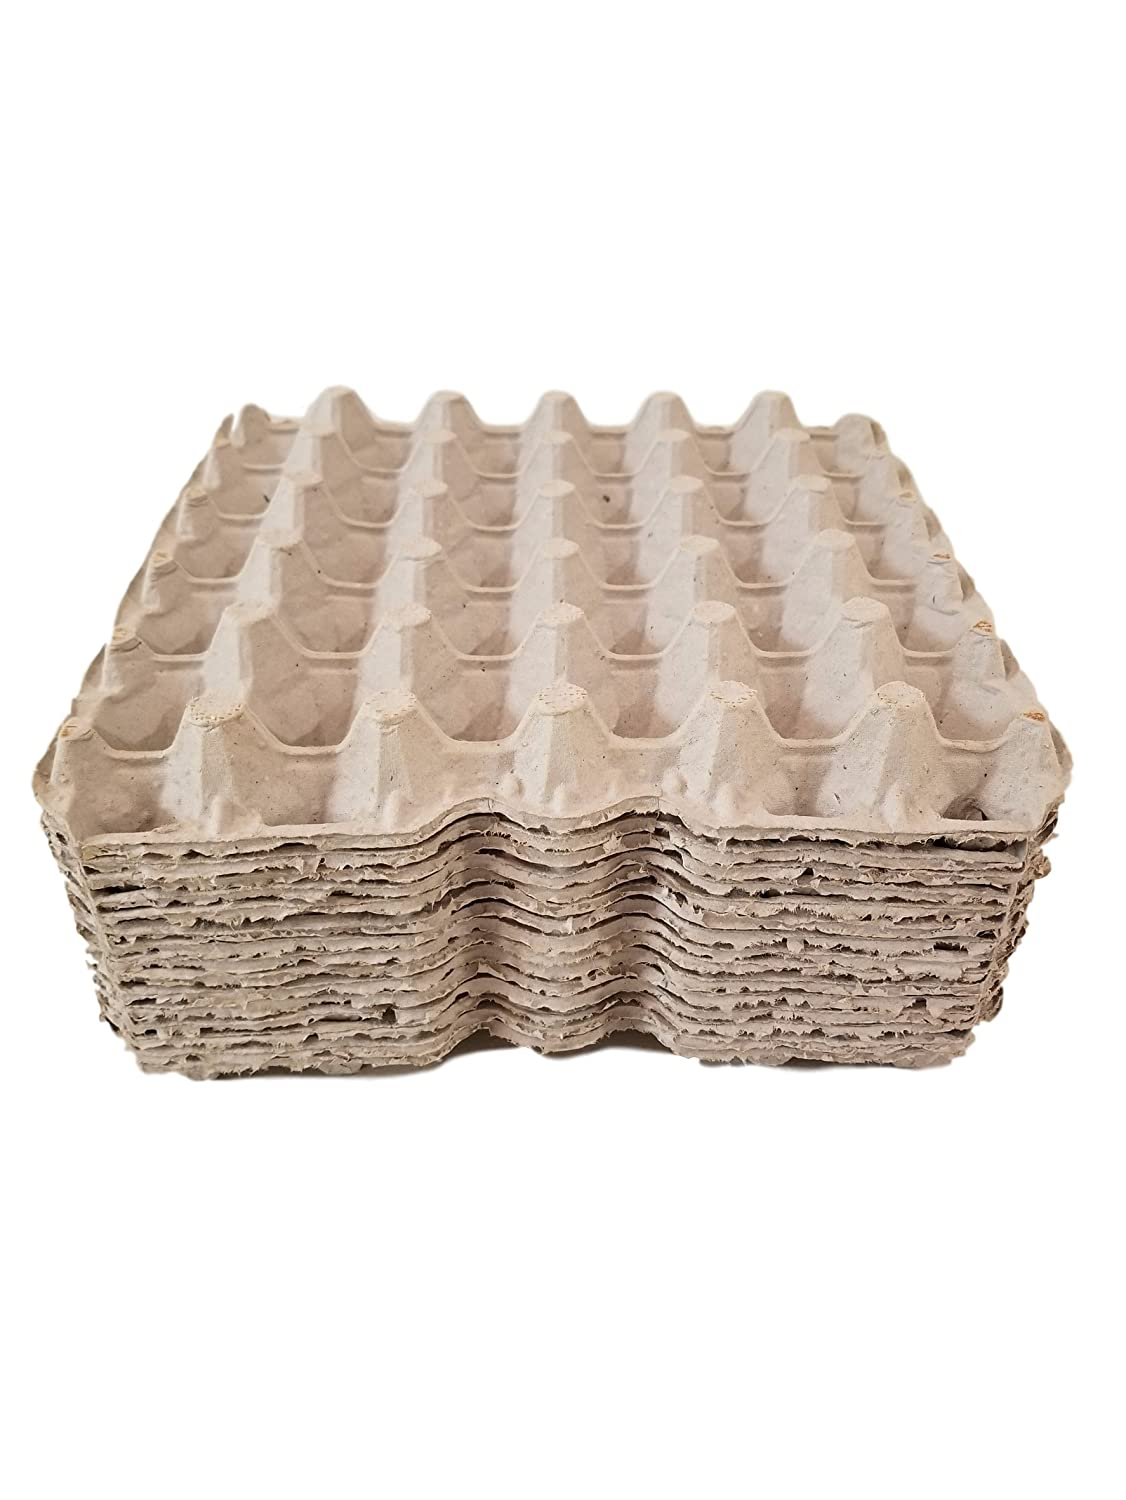 Biodegradable Pulp Fiber Egg Flats for Storing up to 30 Large or Small Eggs/Makes a Great Home for Roach Colony by MT Products (15 Pieces)